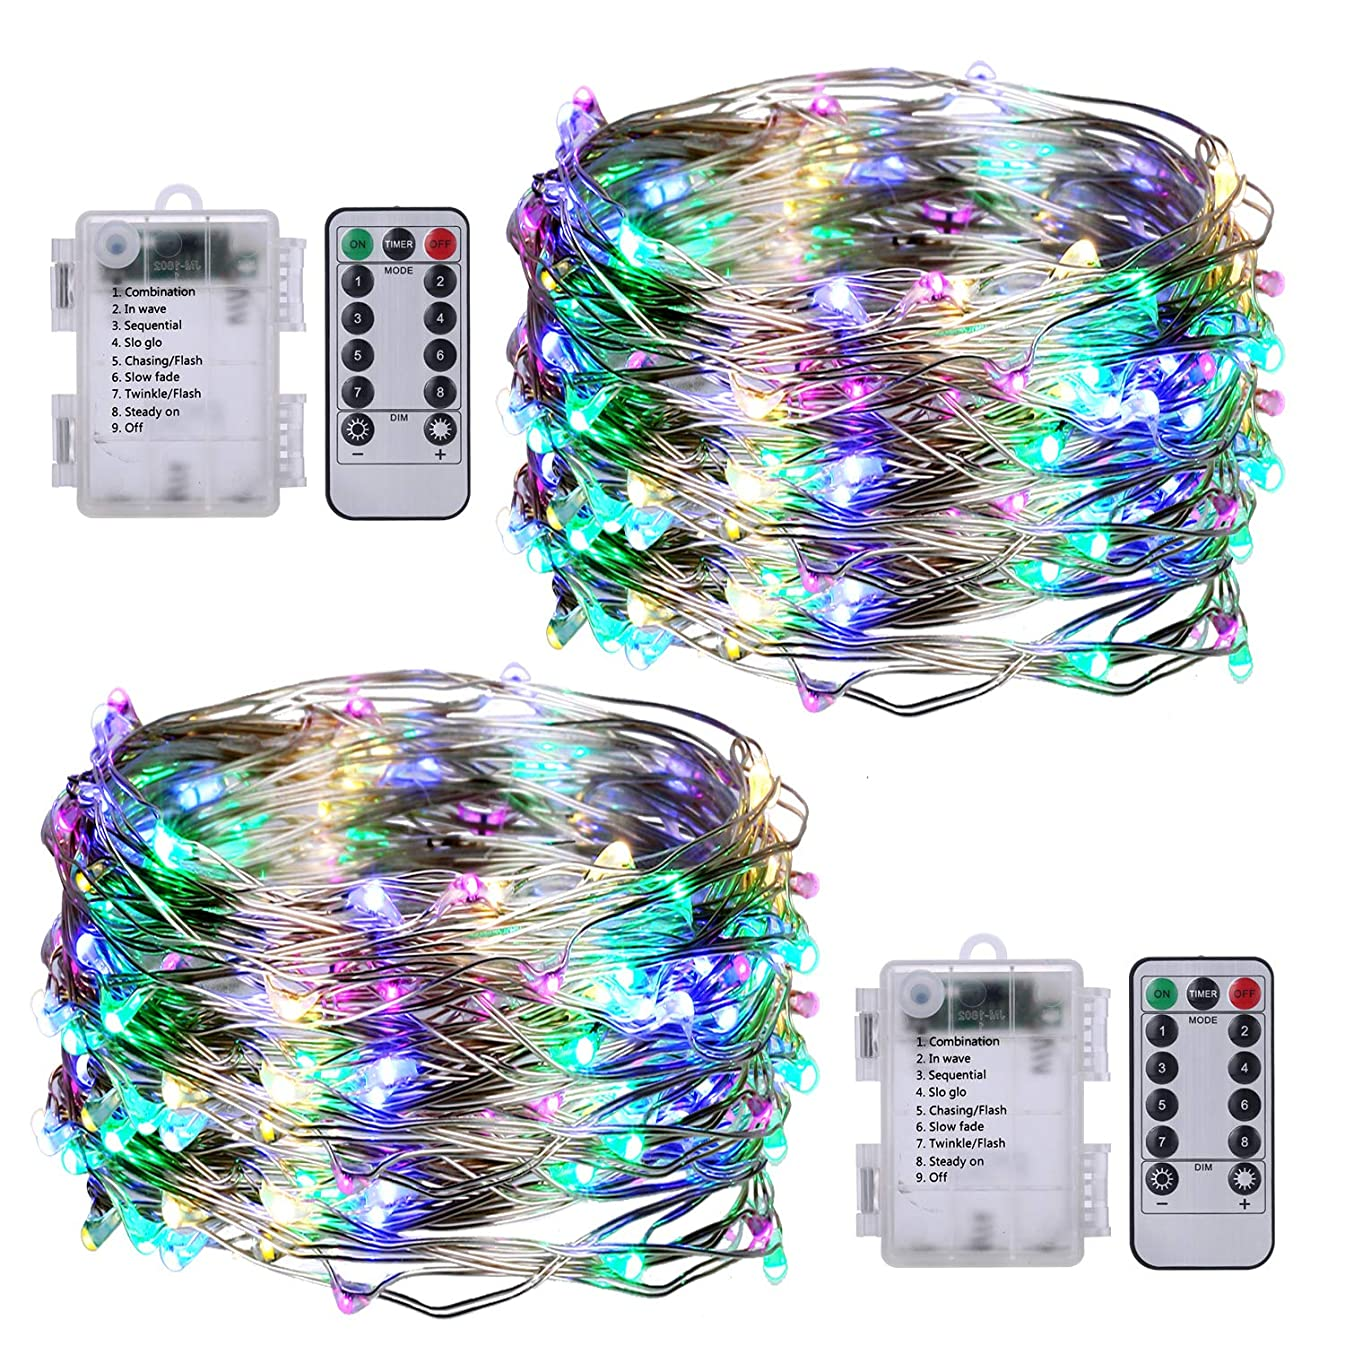 PSG 2 Pack LED String Lights 33ft with 100 LED, Multi Color Changing String Lights with Remote Control, Waterproof Outdoor & Indoor Decorative Lights for Bedroom, Garden, Patio, Parties